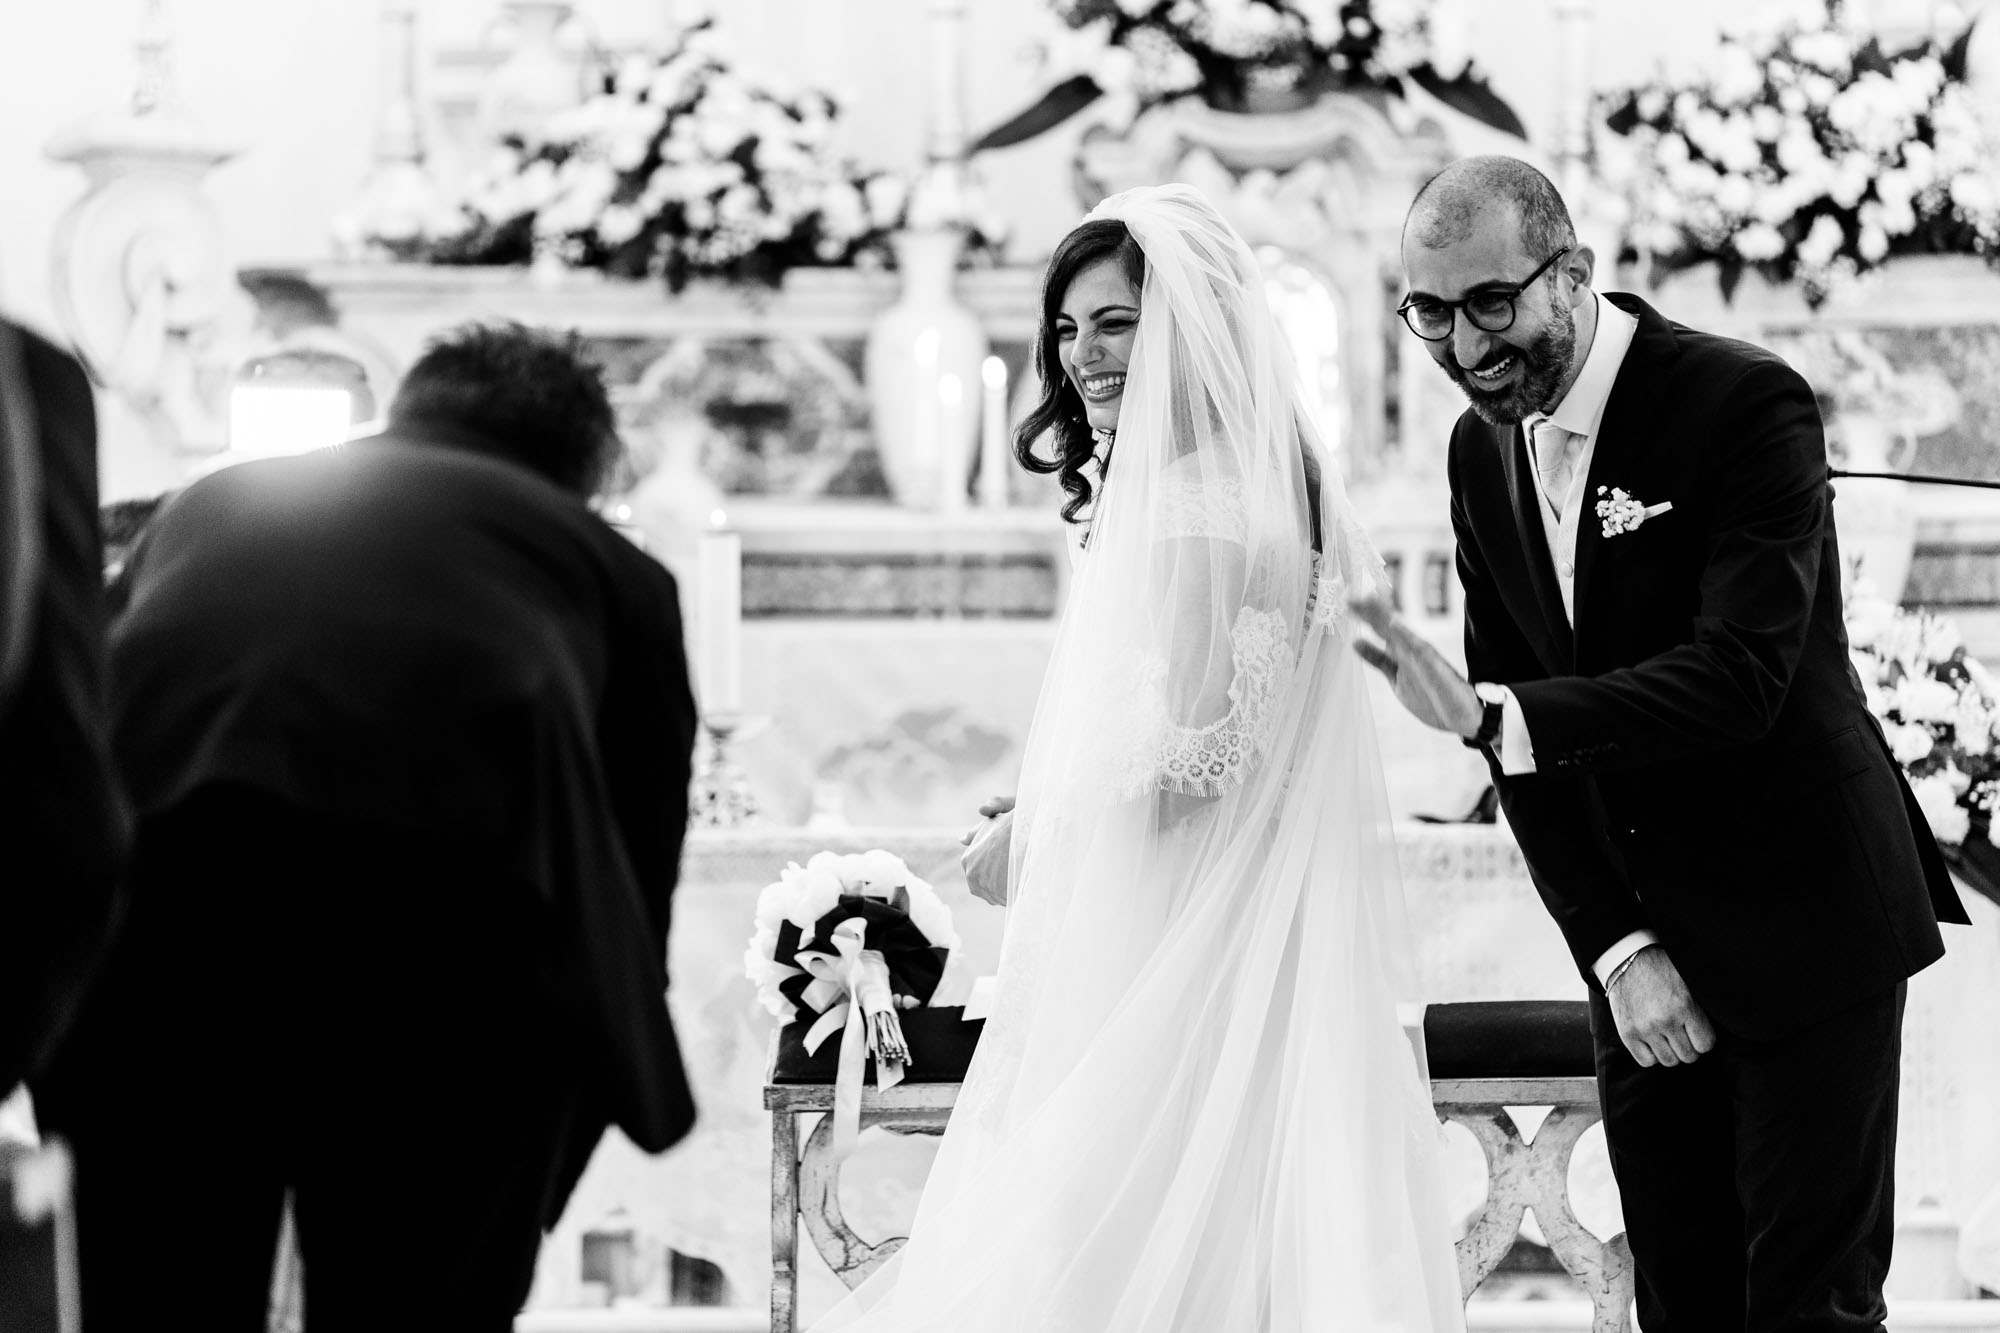 wedding-in-italy-mary-mimmo-24